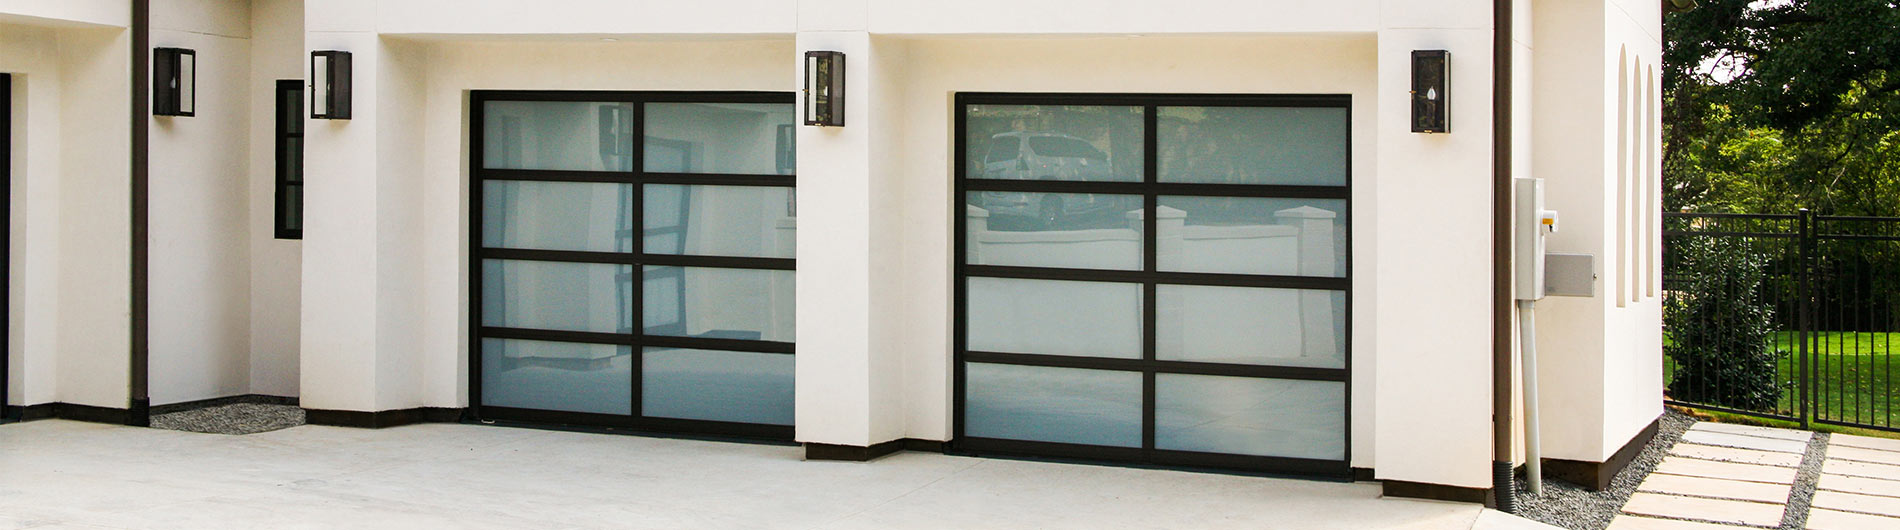 Model 8850, Black powder coated aluminum, White Laminated glass